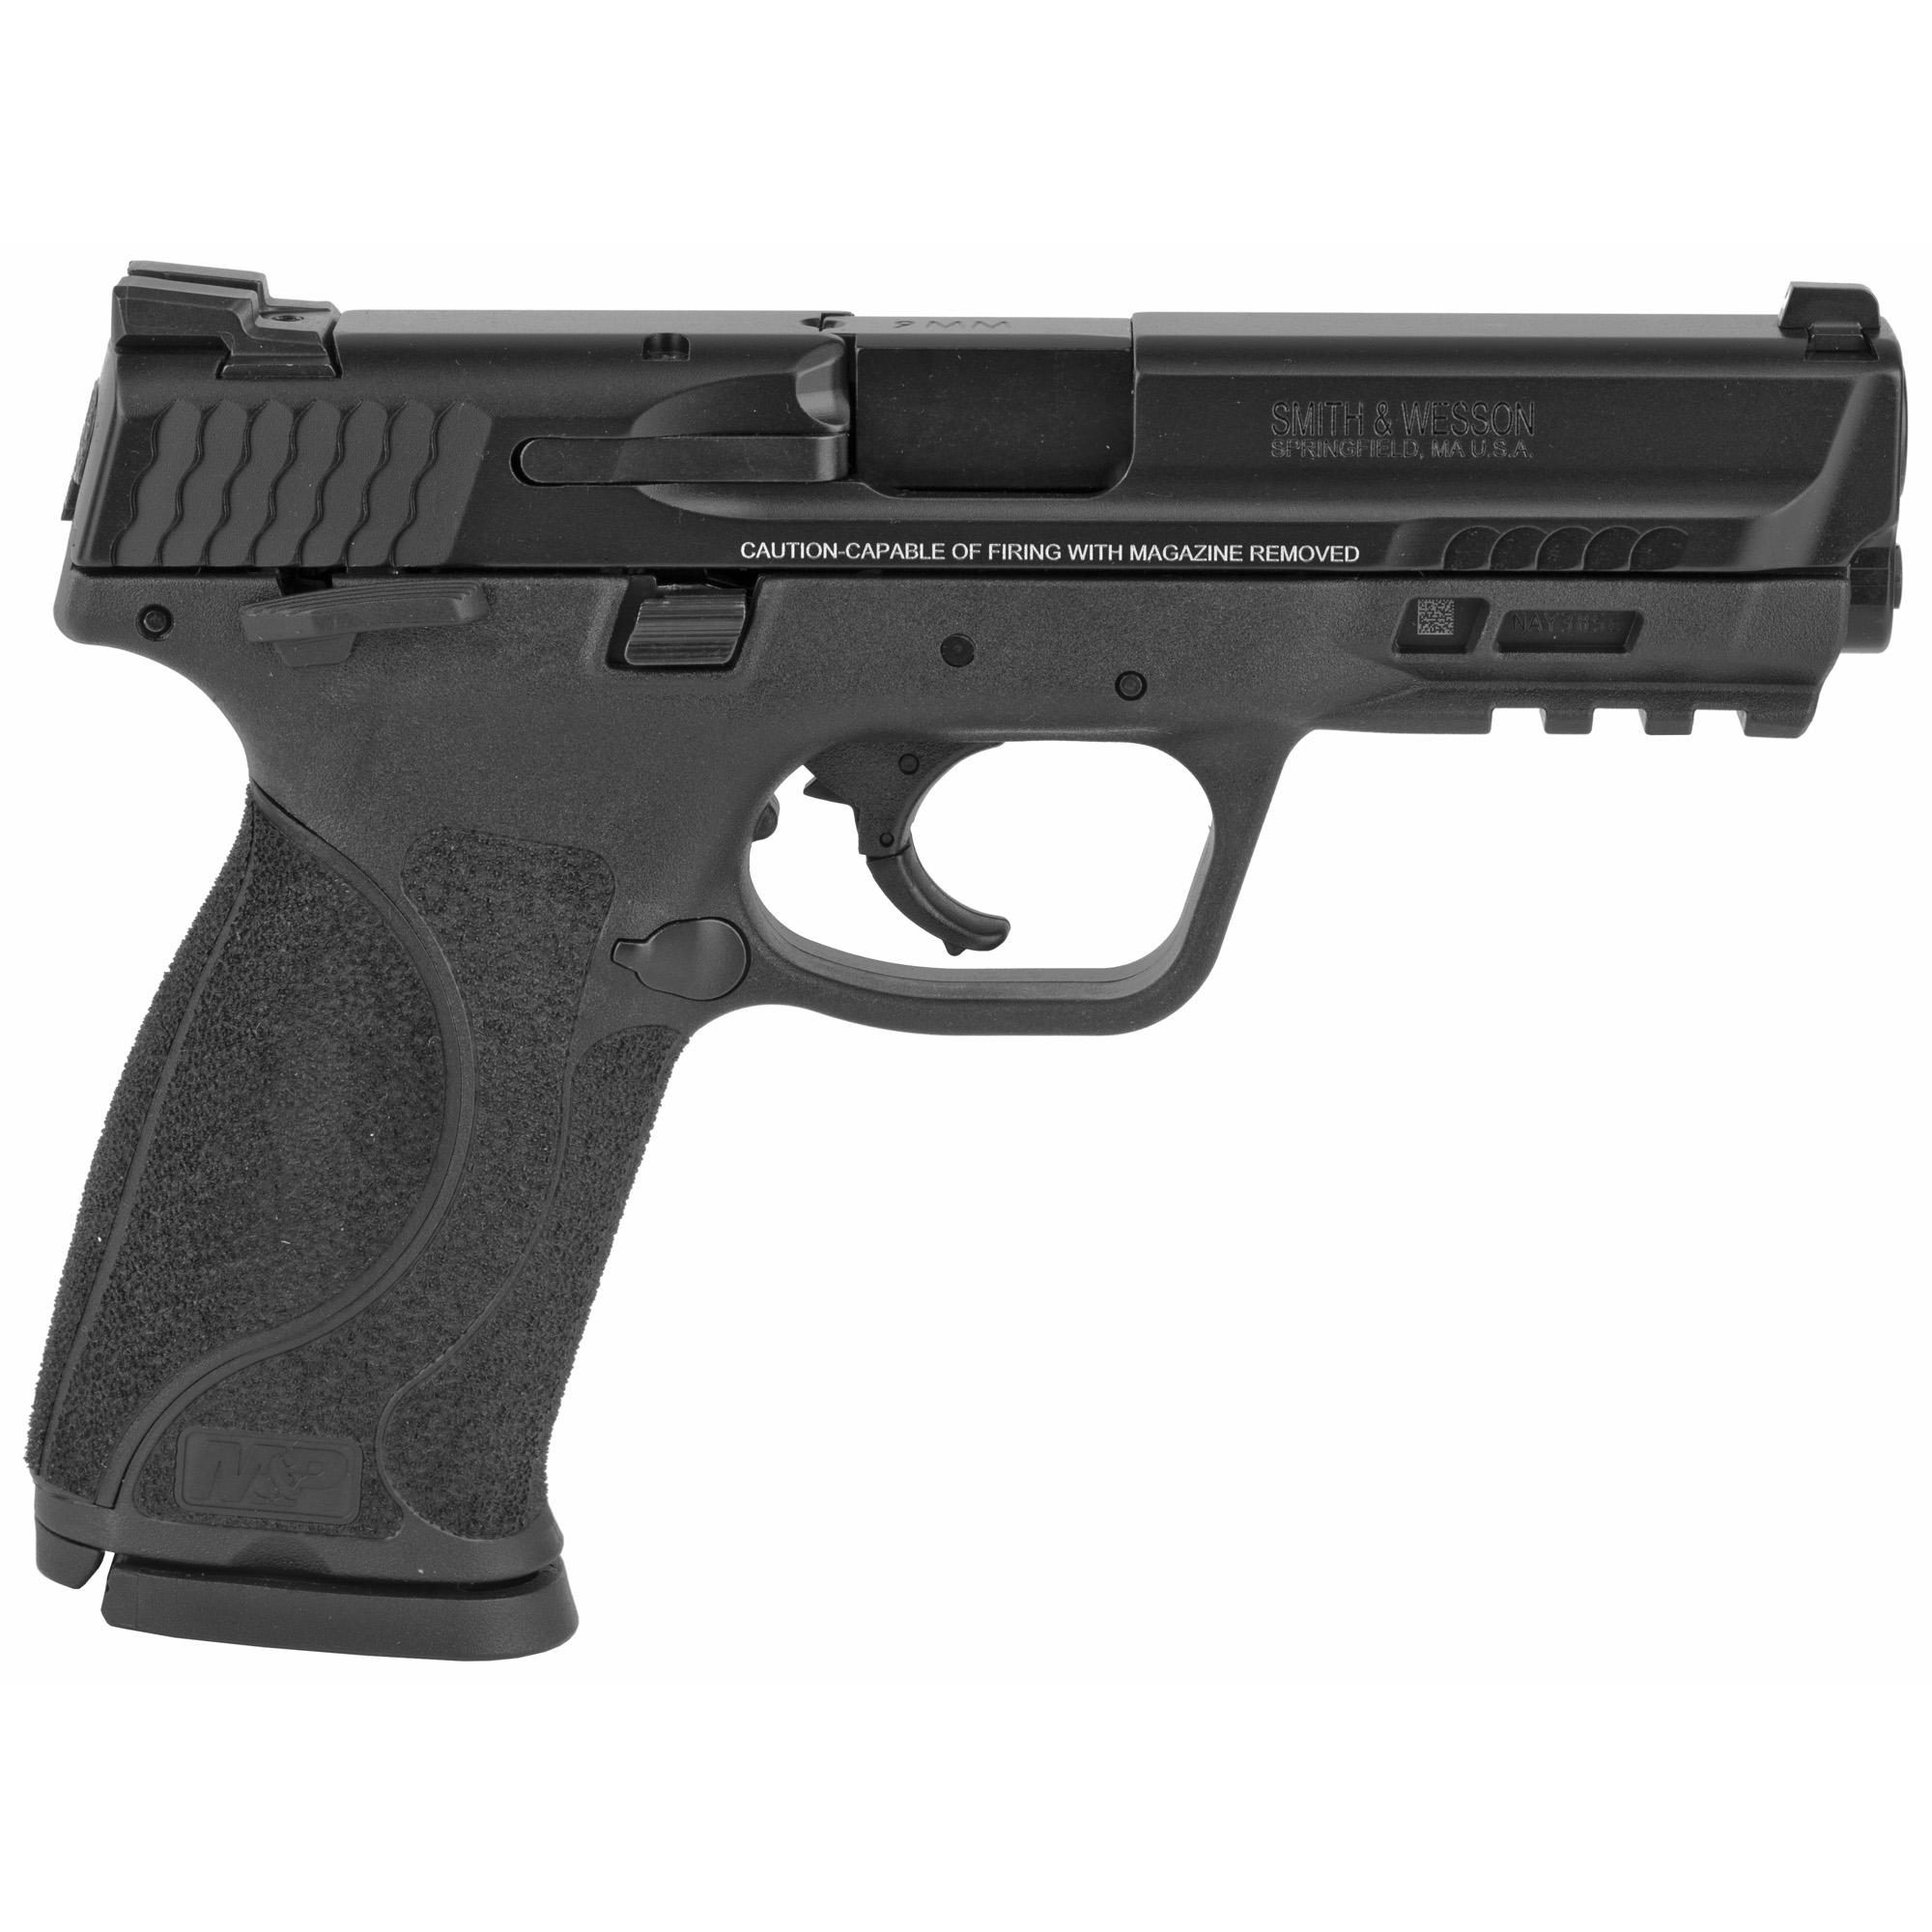 """Smith & Wesson M&P 2.0 Striker Fired 4.25"""" 9mm 17rd Fixed Sights - Black-img-1"""